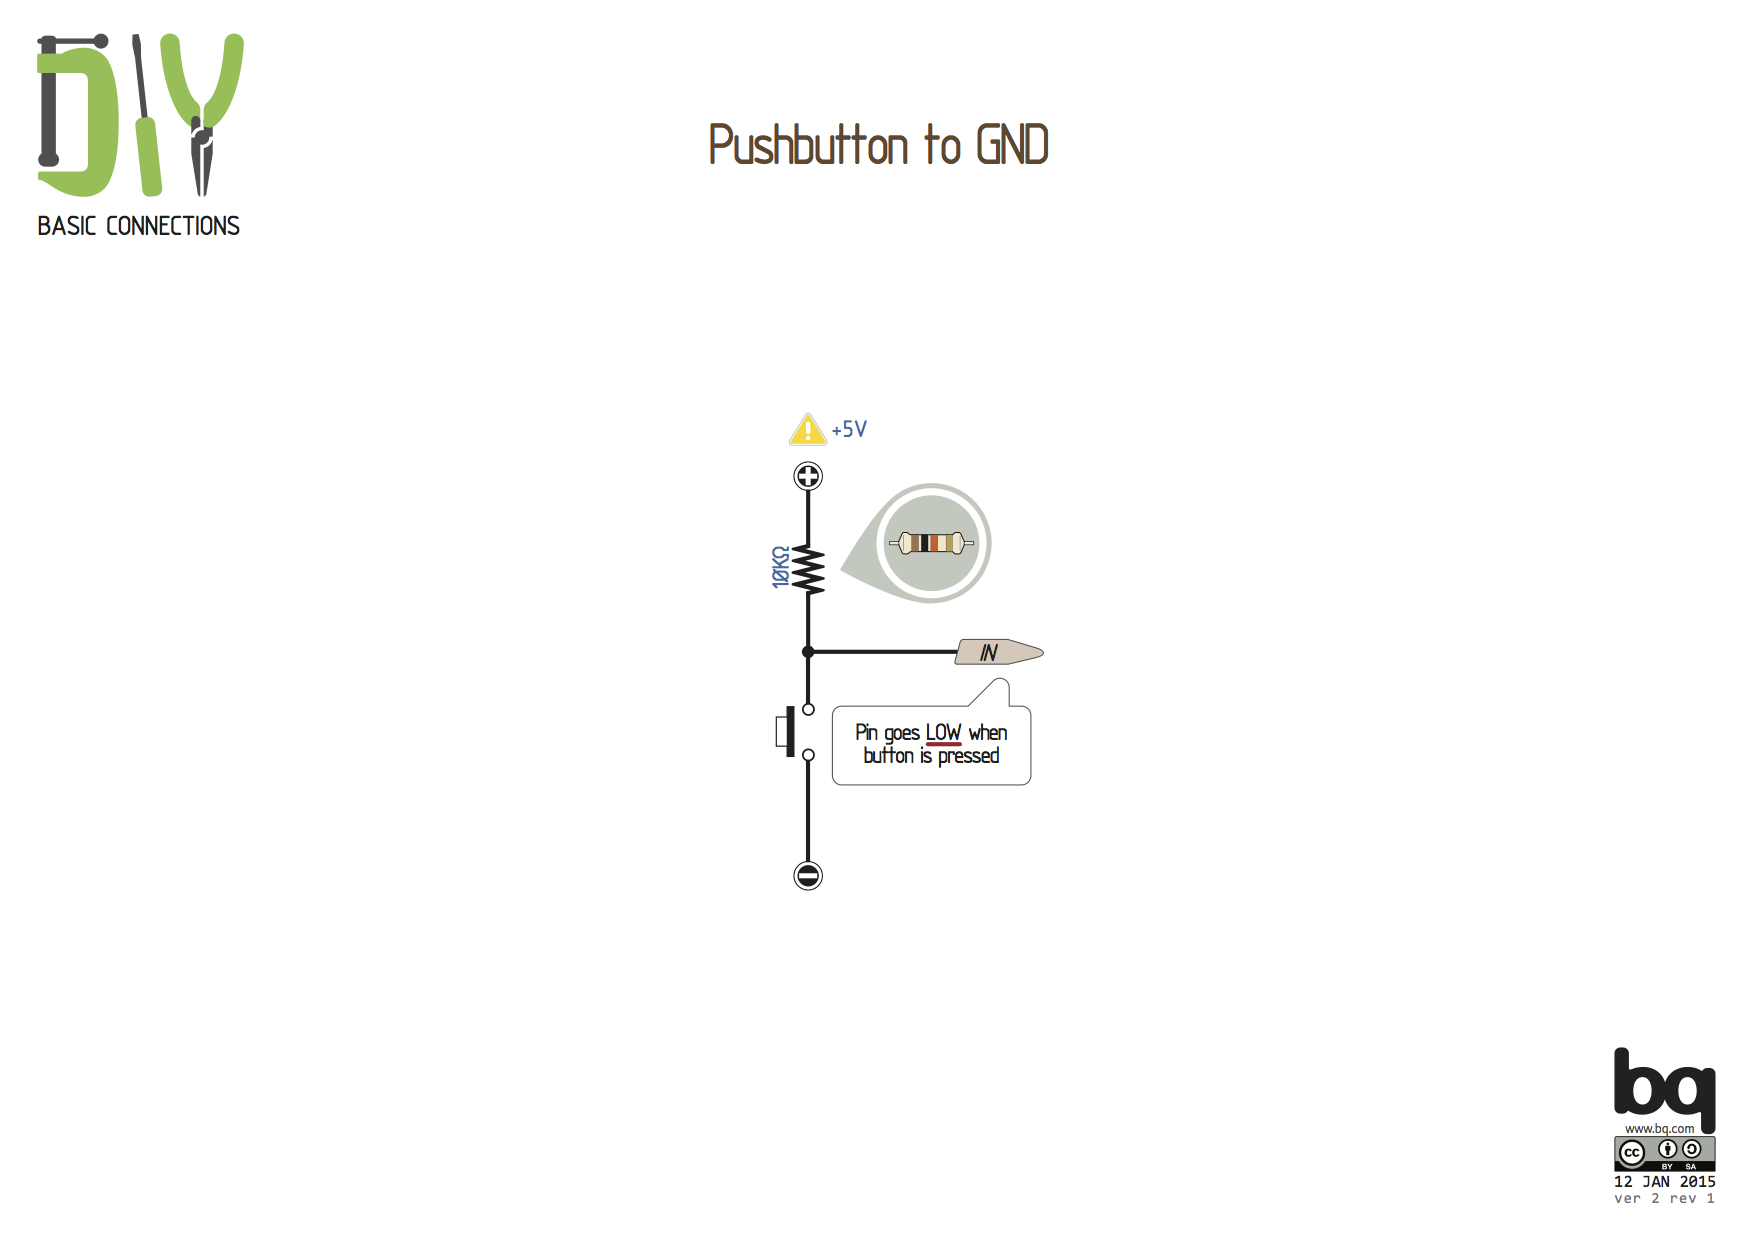 The While Loop And Push Button Diwo Switch Together With Wiring Diagram On Here Signal Pin Will Have 0 Volts When Is Pressed So How Do We Program It In Arduino Lets Assume That Next Component Connection